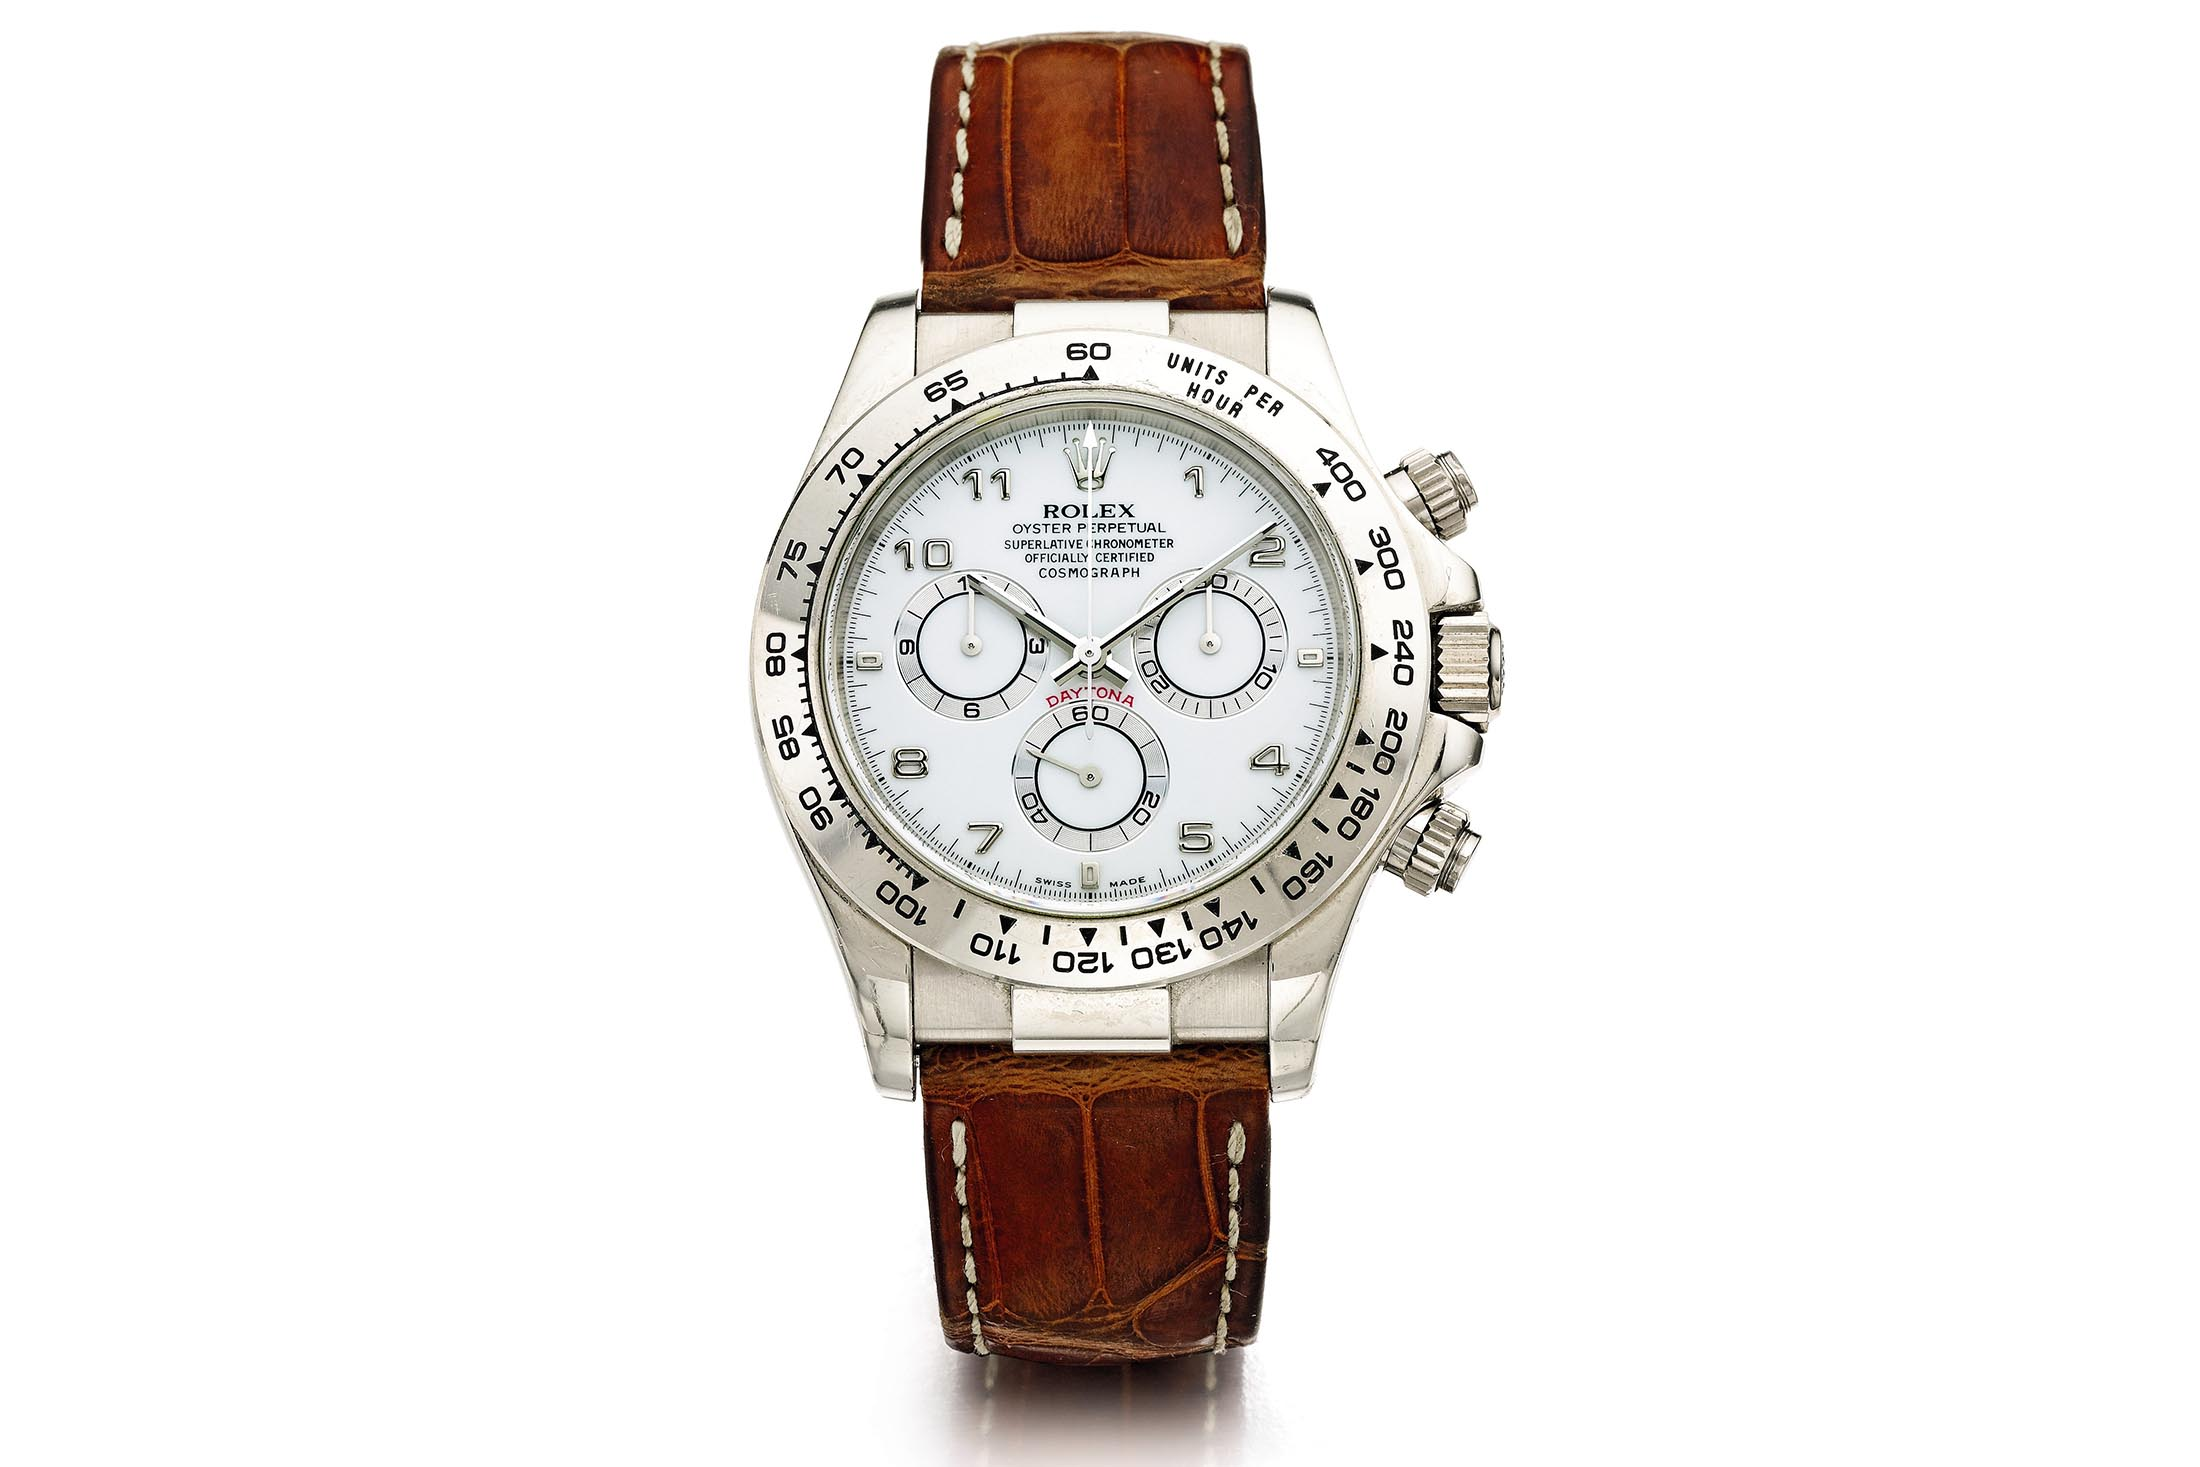 Lot 5 — Rolex Daytona Ref. 116519